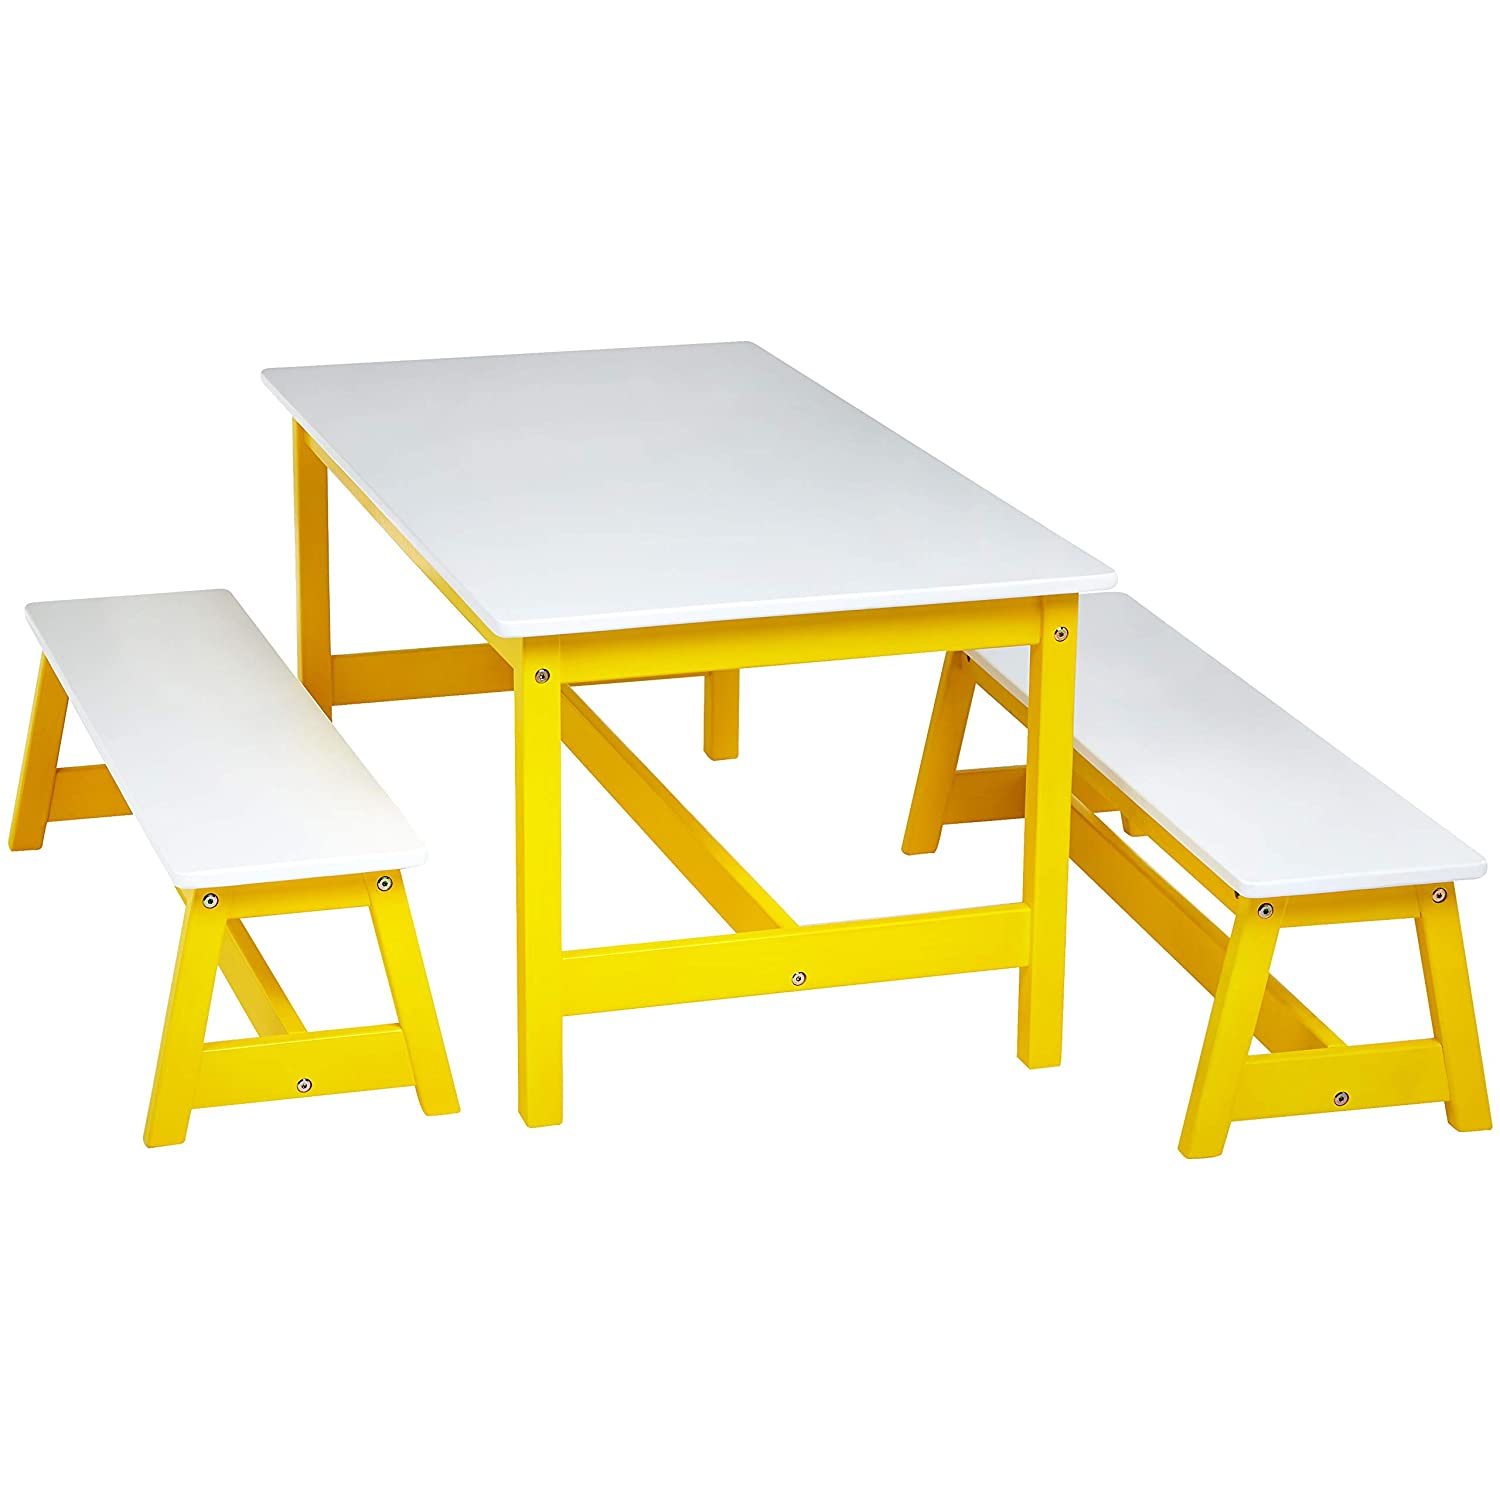 AmazonBasics Indoor Kids Table and Bench Set, White